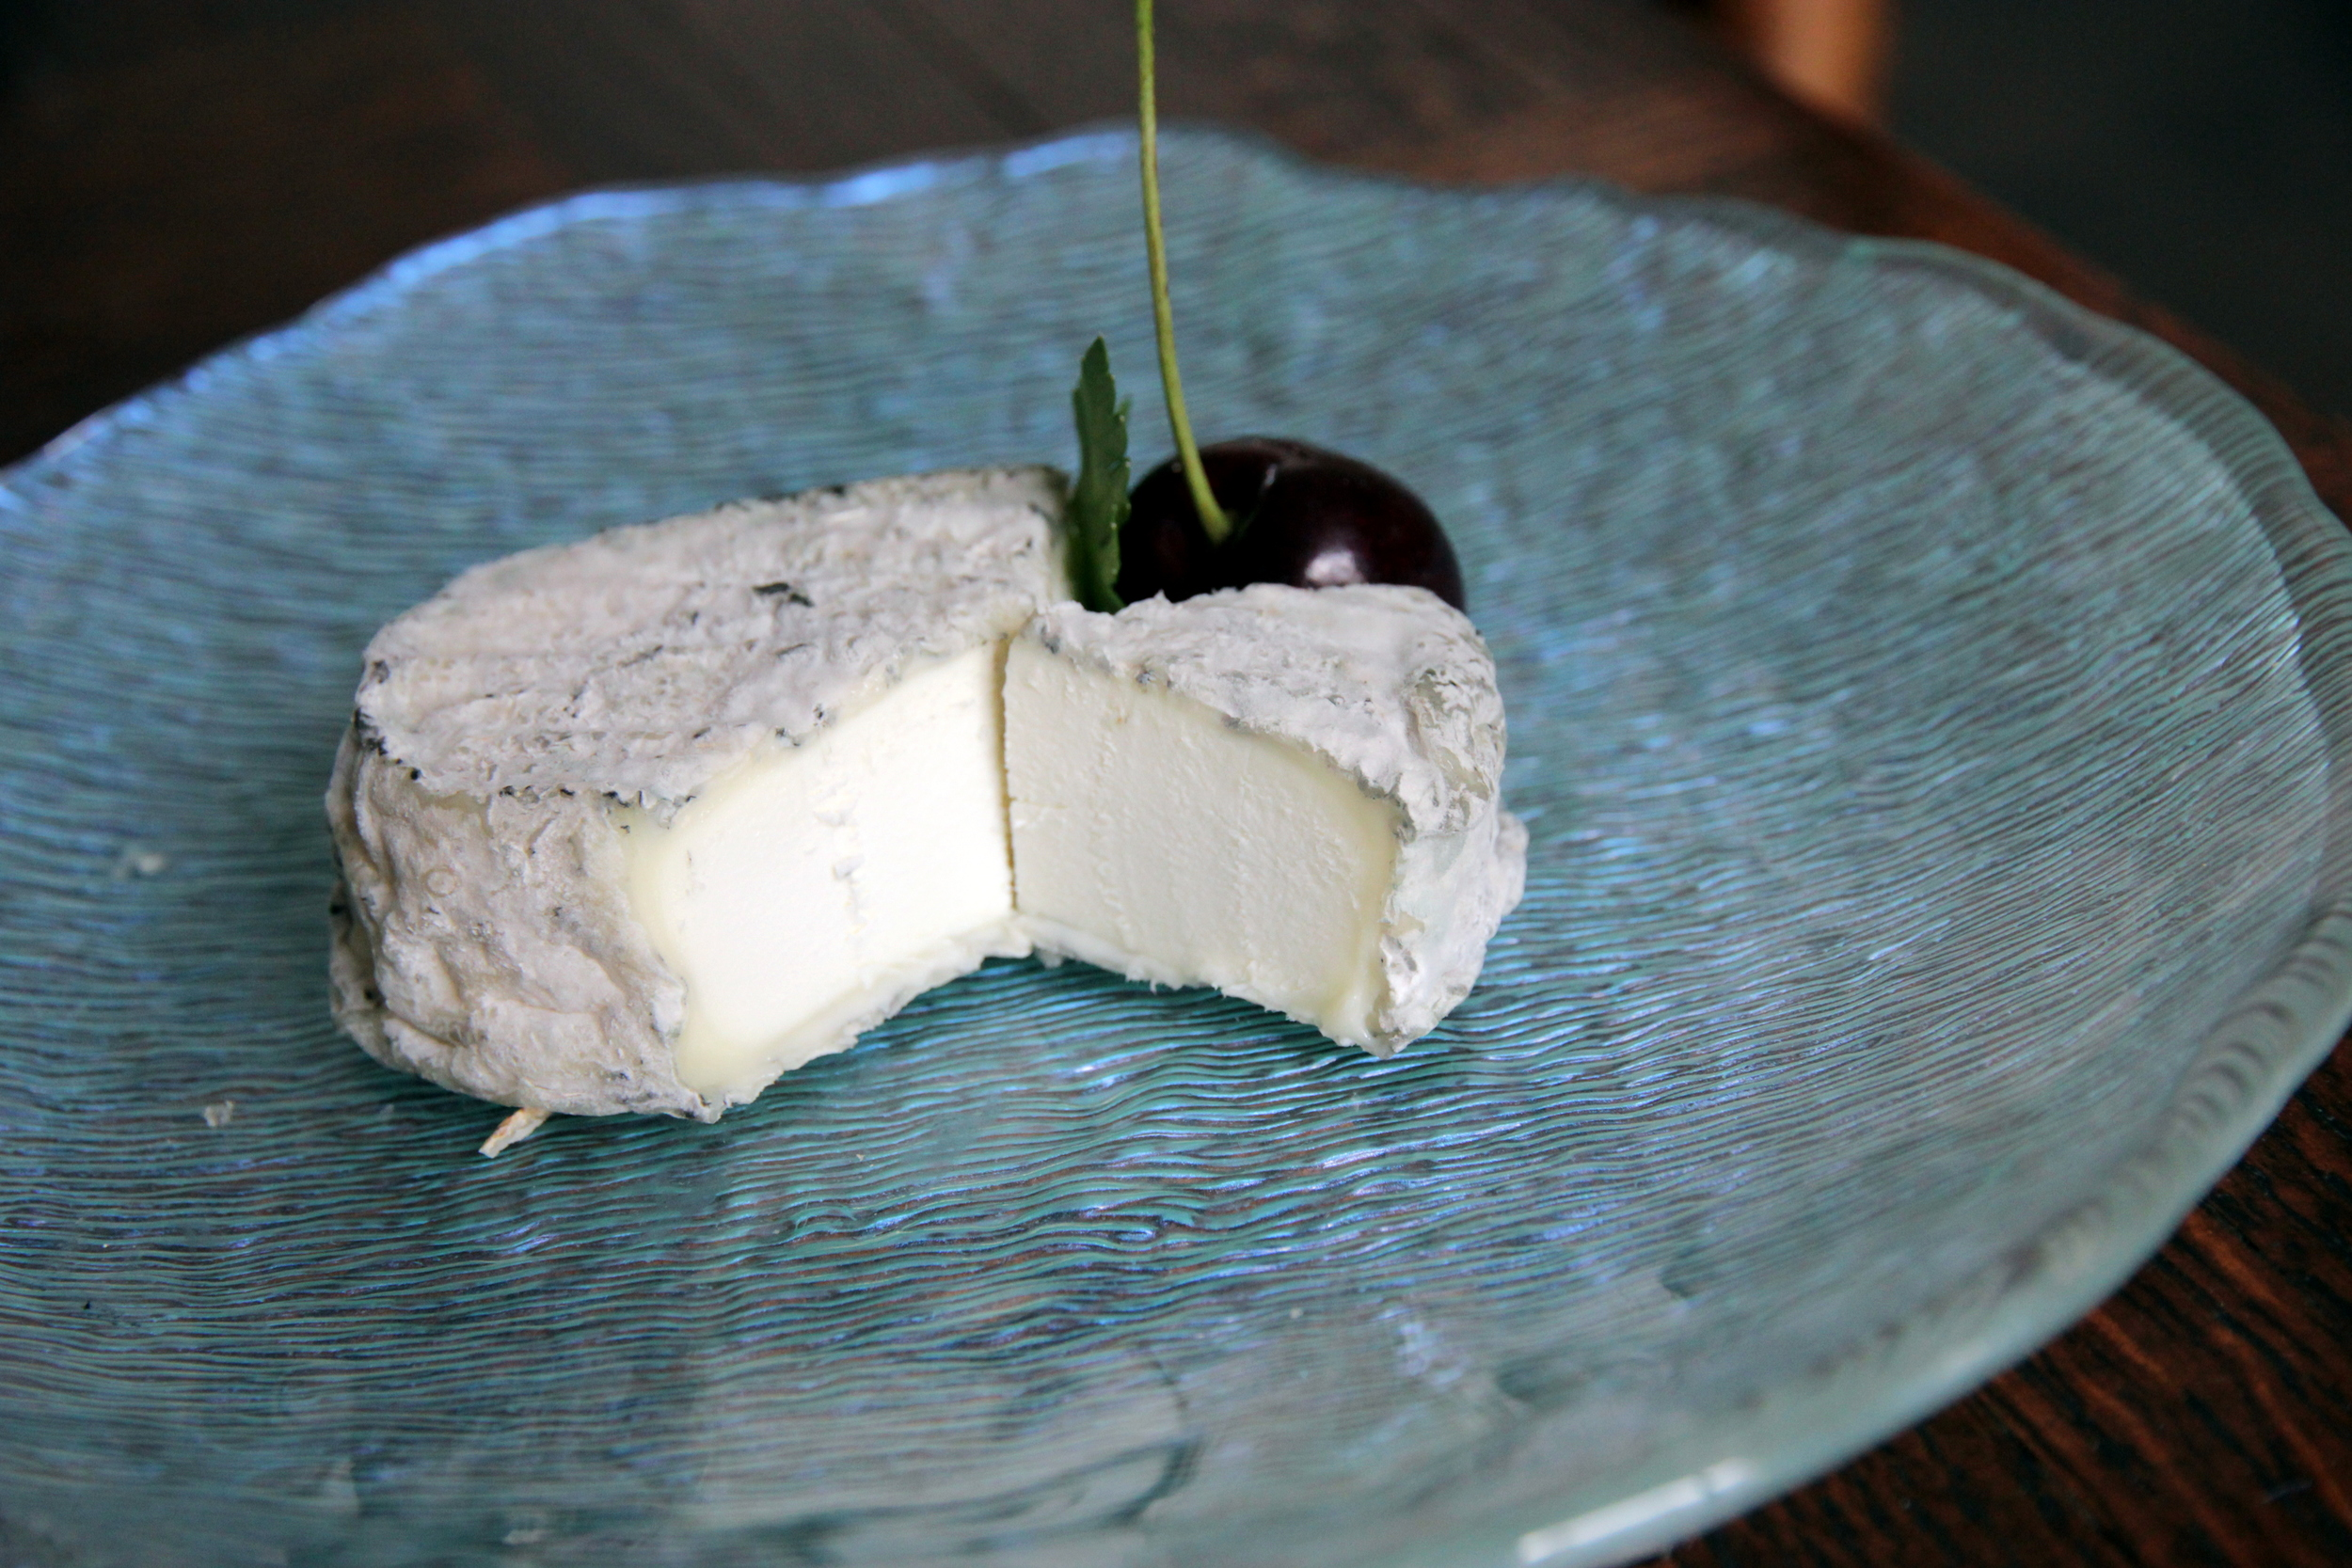 Chèvre fermier, also with a cindered rind.